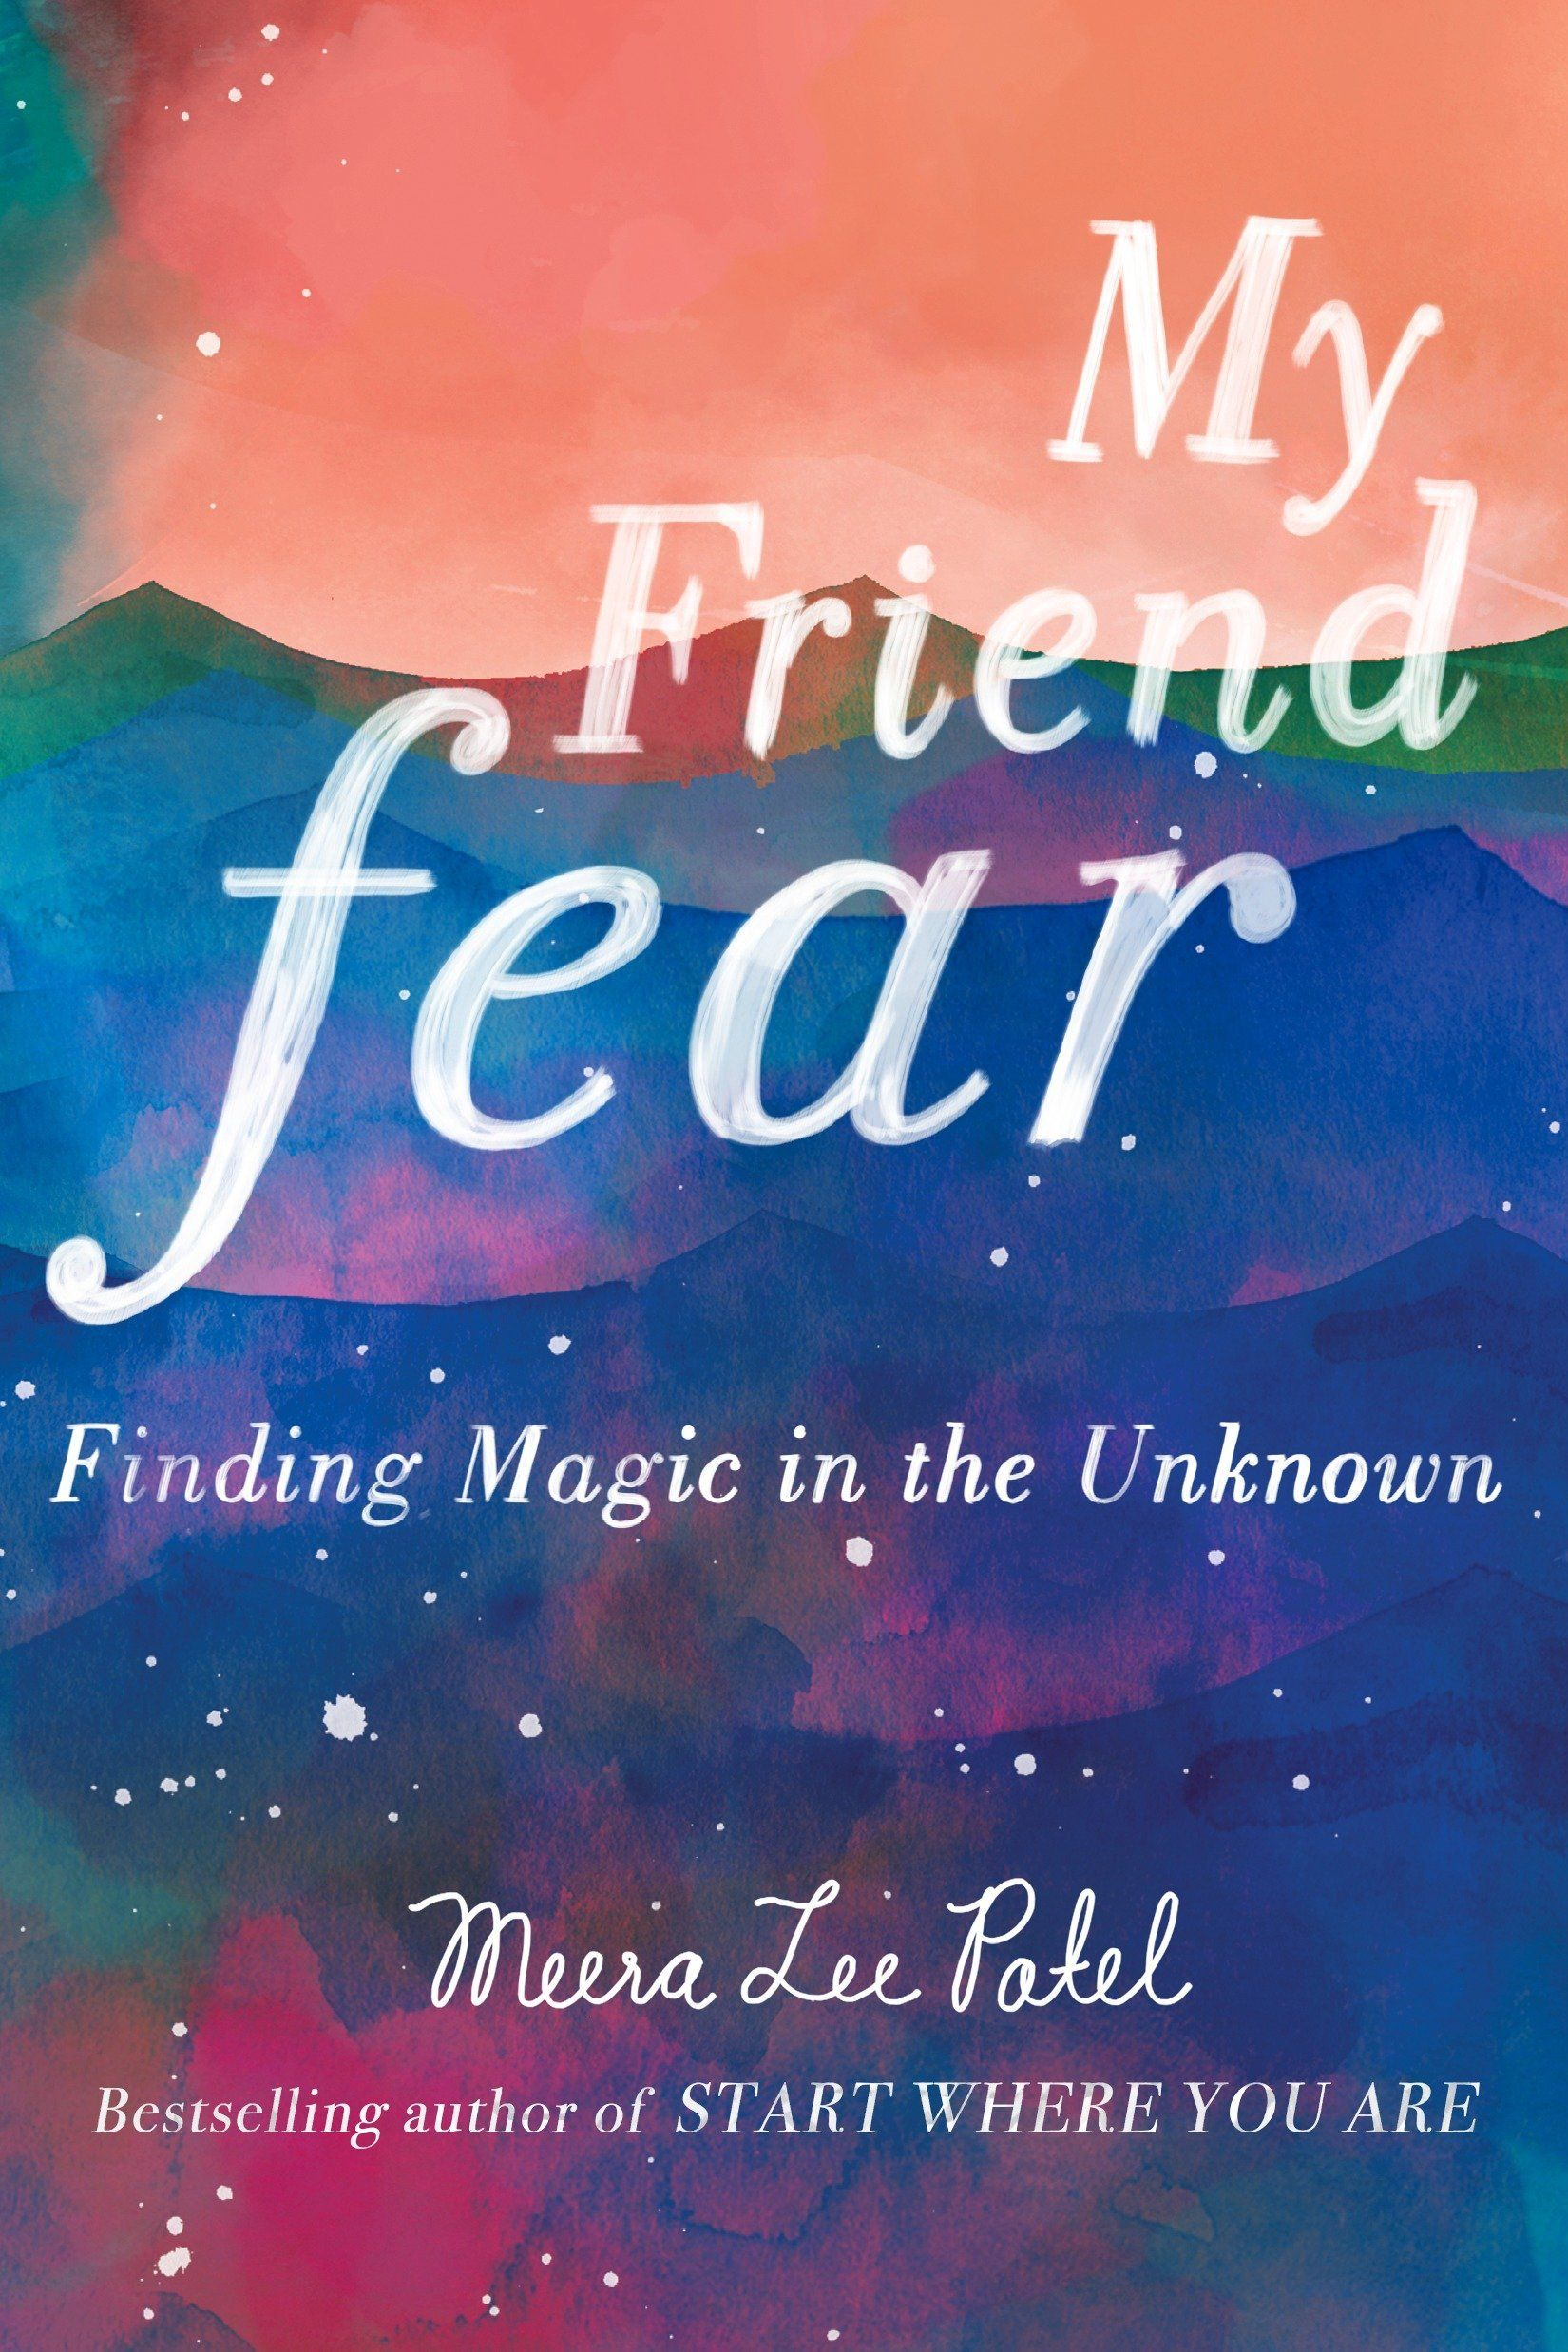 'My Friend Fear: Finding Magic in the Unknown' by Meera Lee Patel